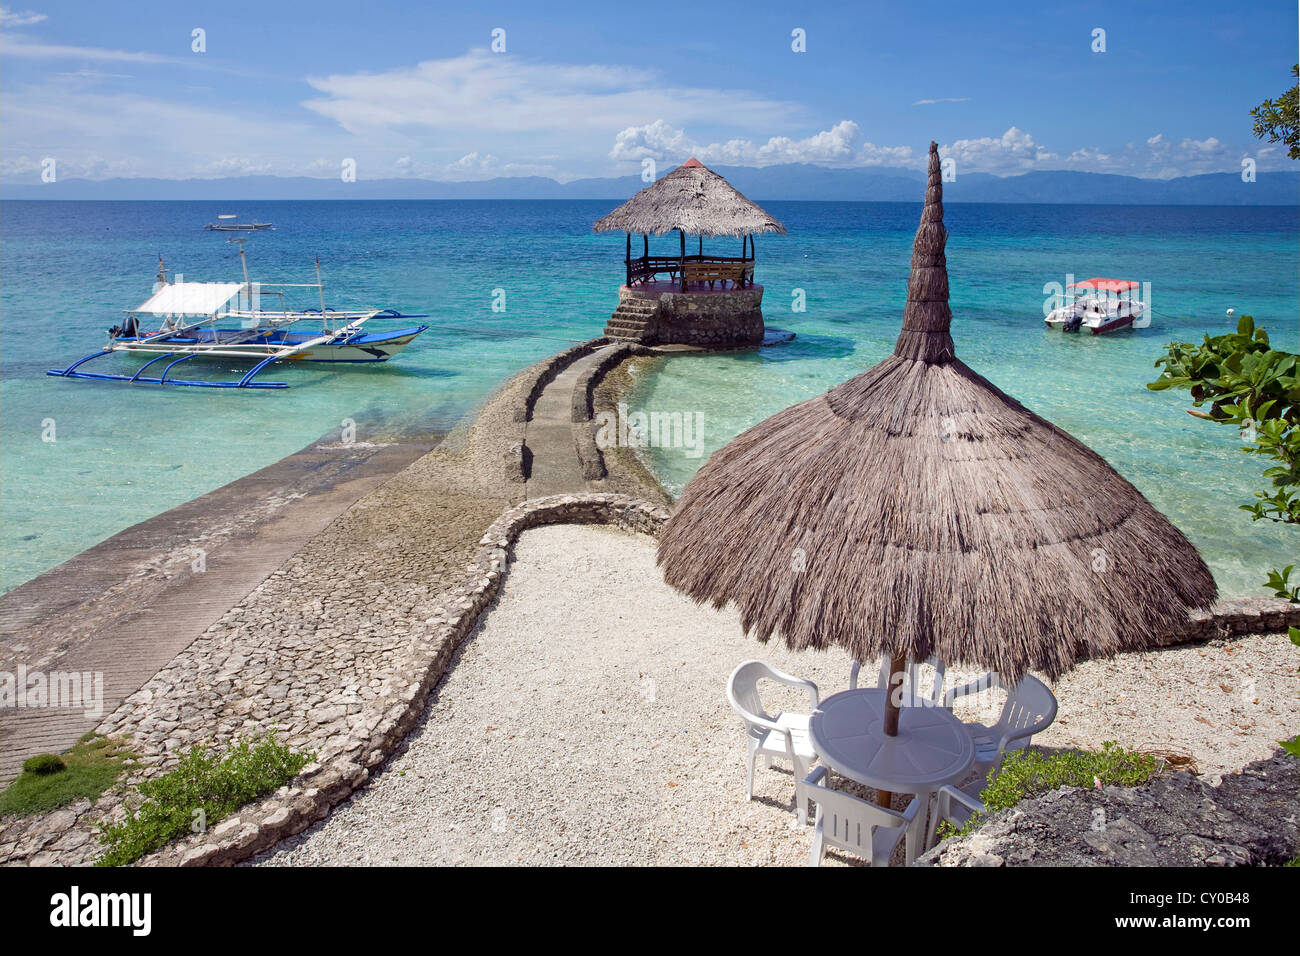 Jetty for boats, small resort, Dolphin House, on White Beach, Moalboal, Cebu, Philippines, Indo-Pacific region, - Stock Image